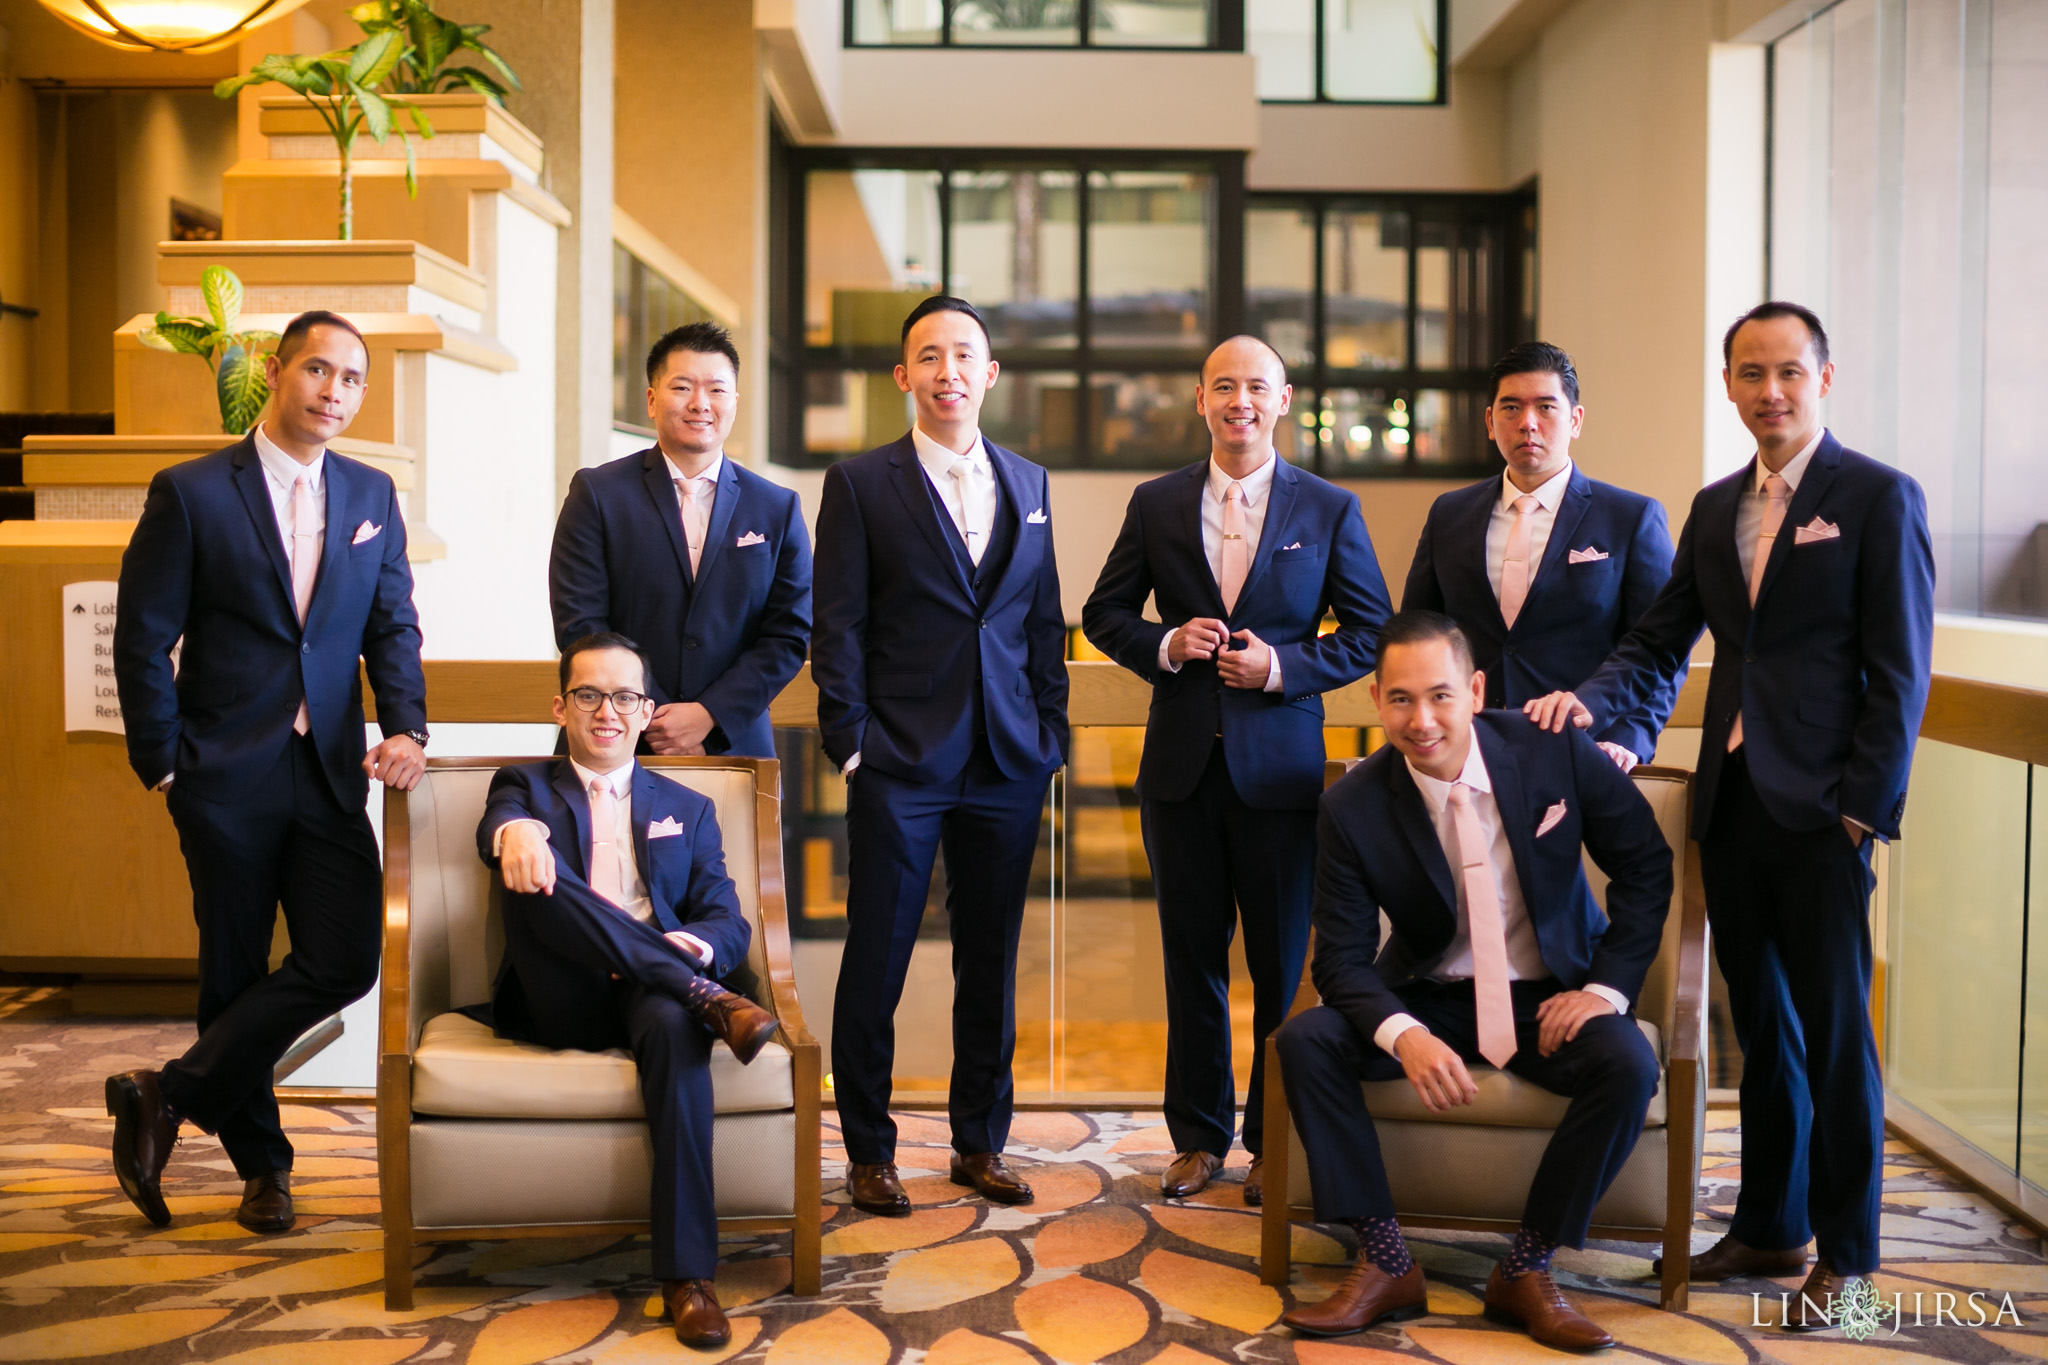 07 hilton costa mesa groomsmen wedding photography